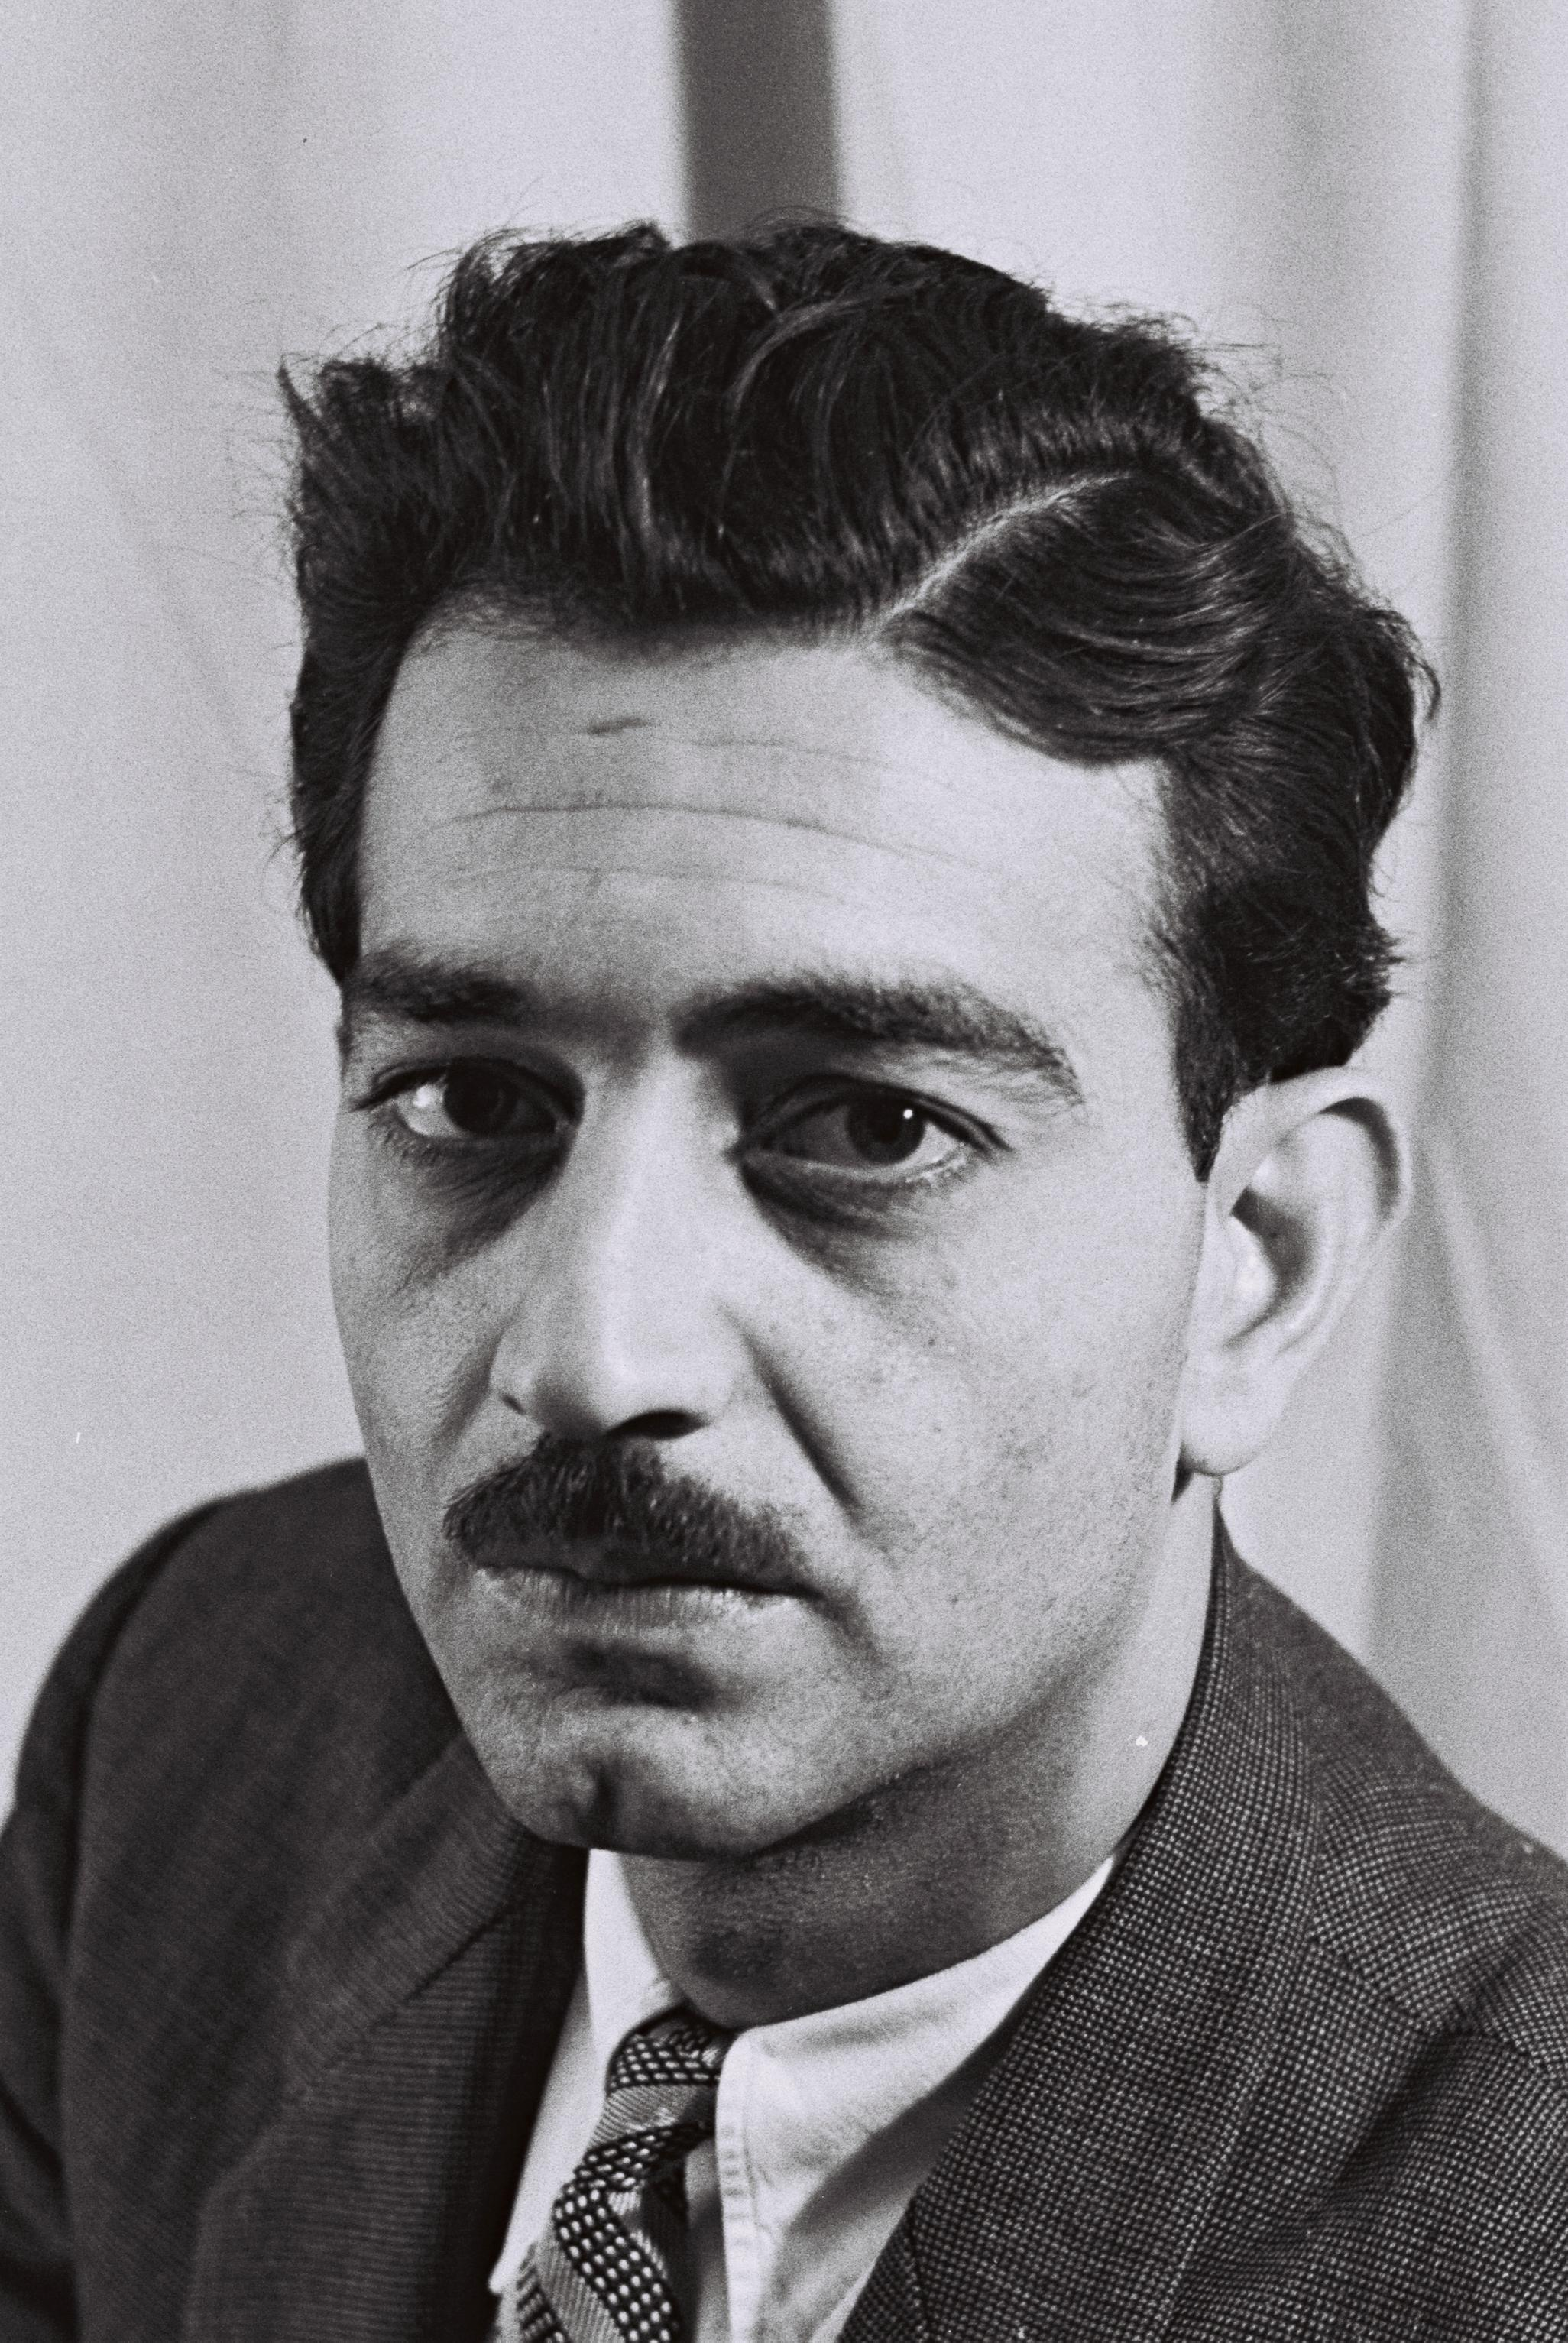 PORTRAIT OF EMILE HABIBI, ISRAEL COMMUNIST PARTY